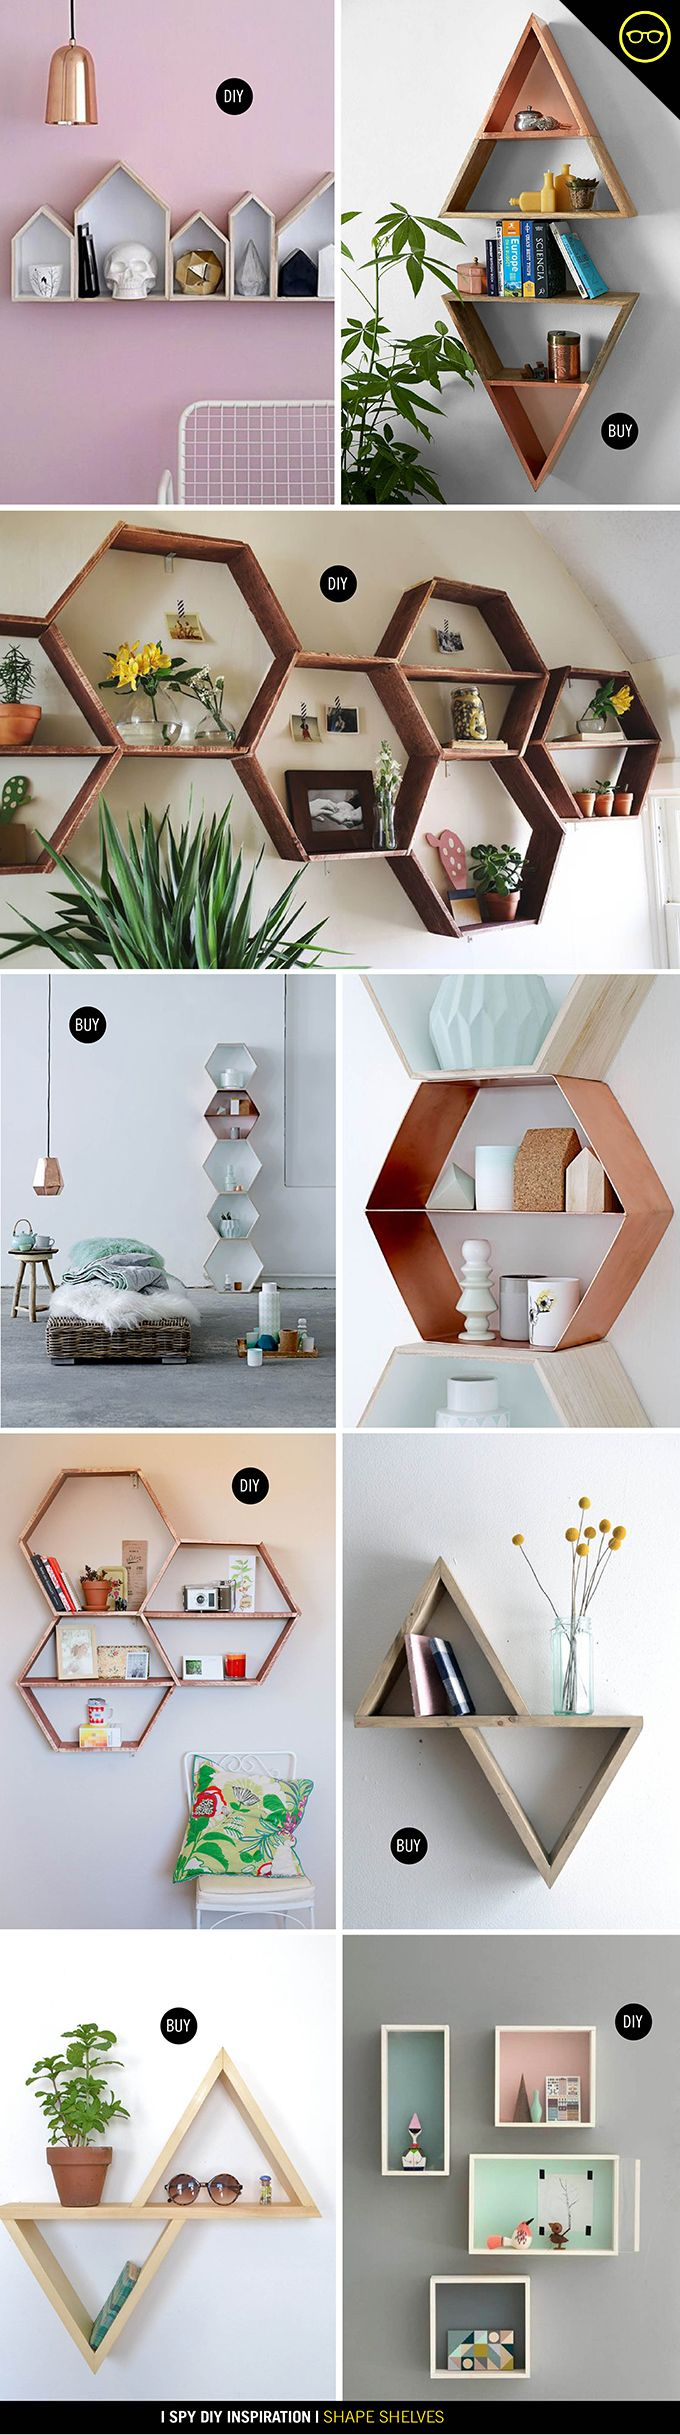 Kmart INSPIRATION | SHAPE SHELVES | I SPY DIY